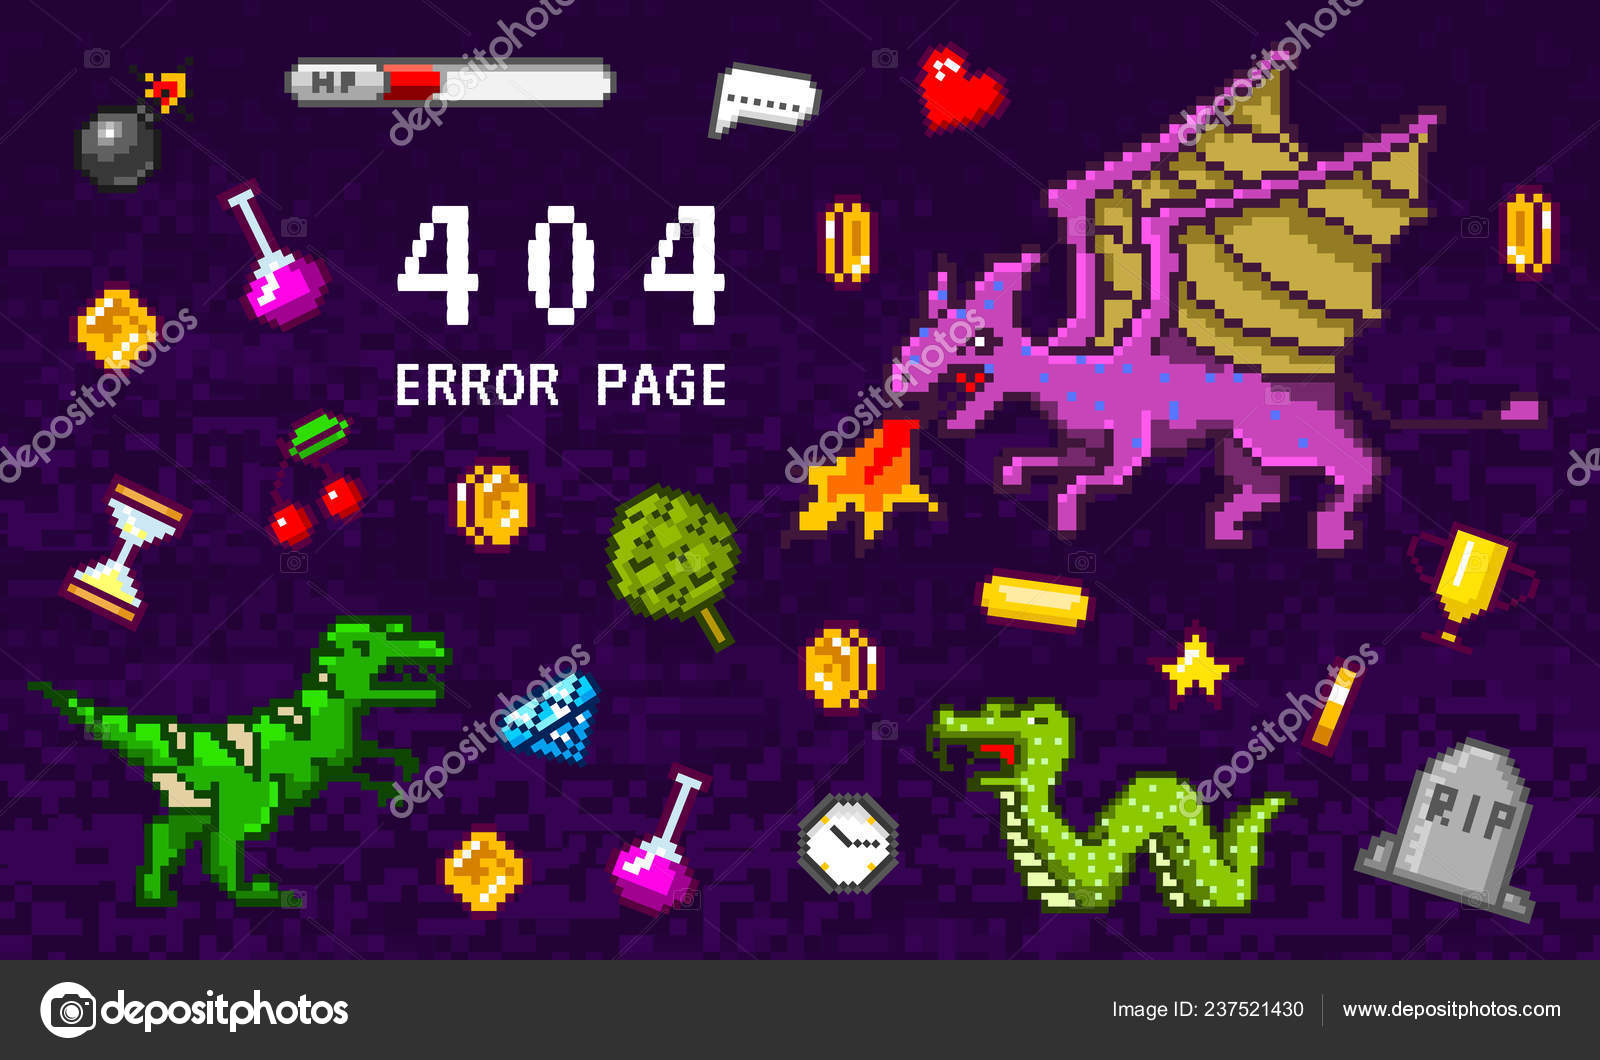 404 Error Page Not Found Pixel Art 8 Bit Objects Retro Game Assets